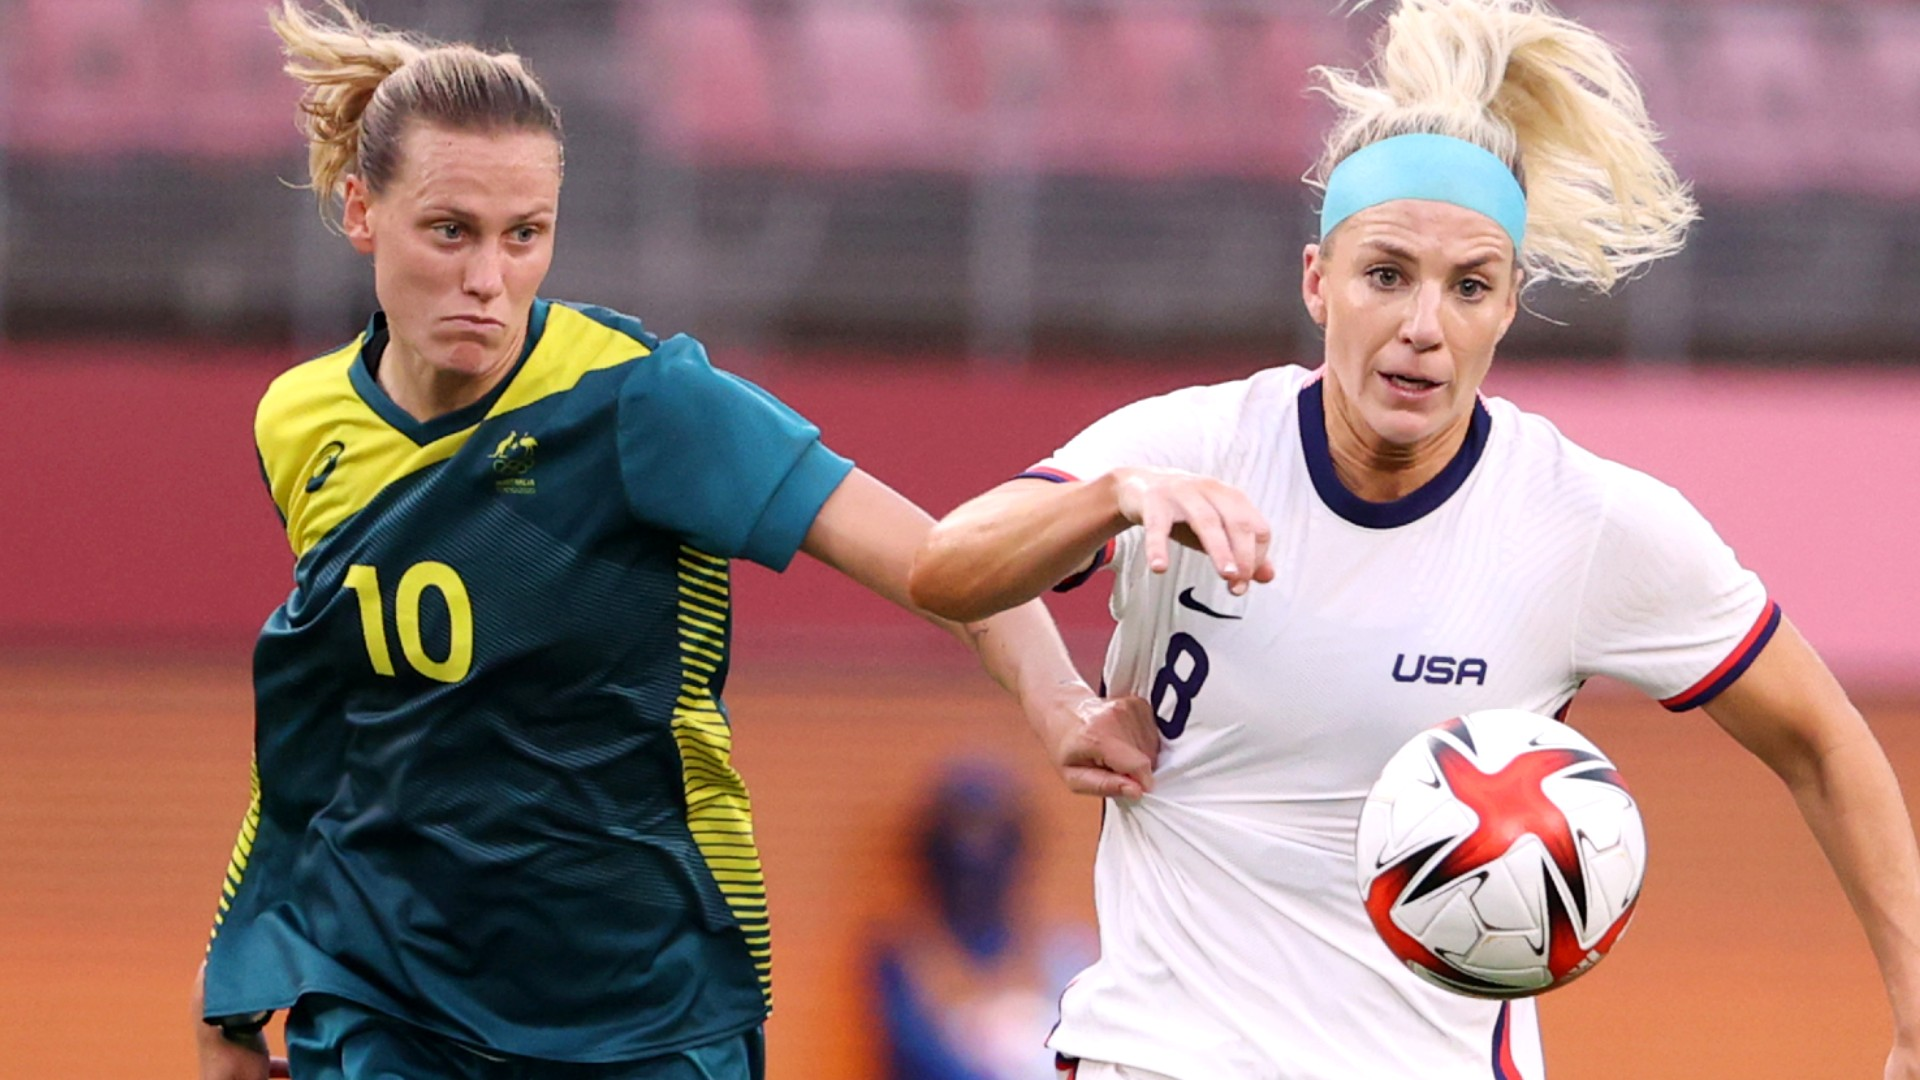 USWNT vs. Australia: Time, channel, TV, stream to watch Olympic women's soccer bronze medal match